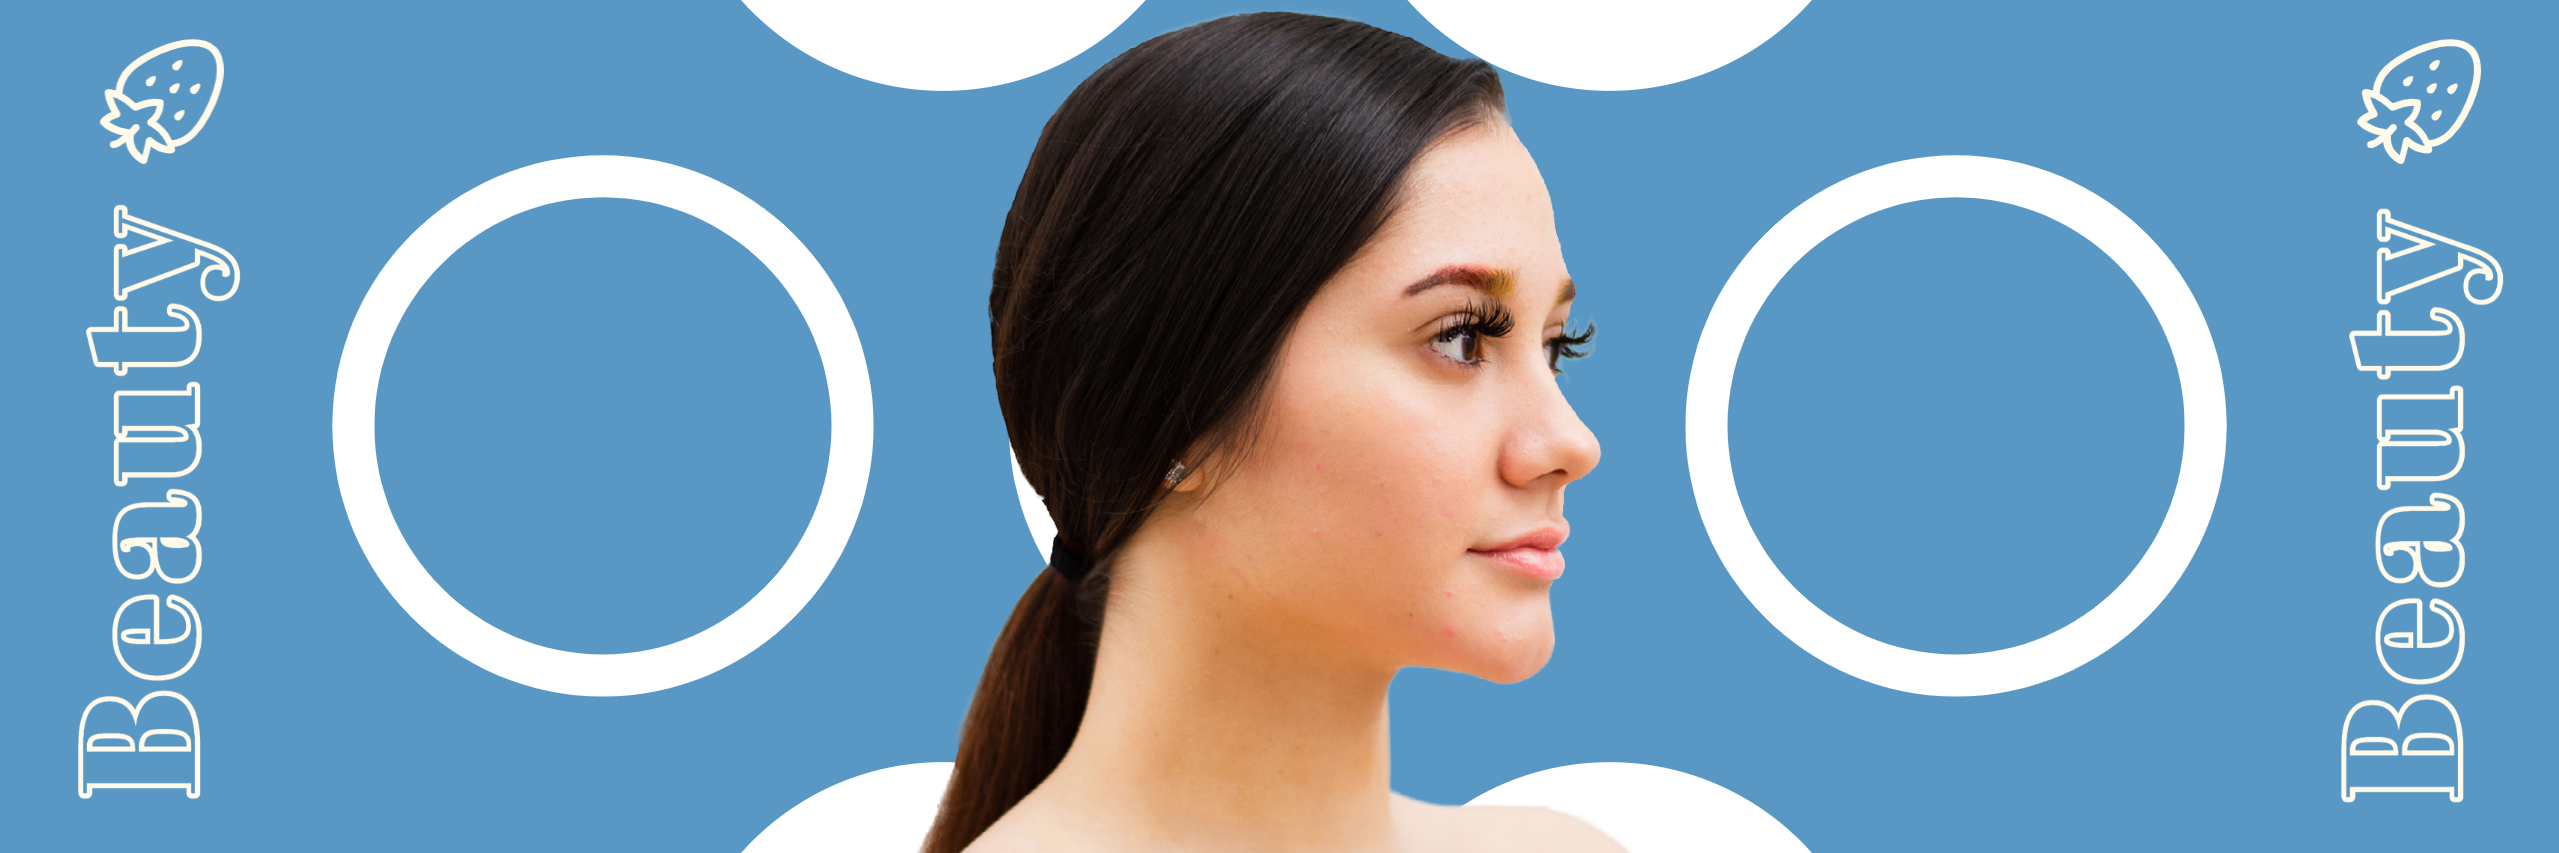 Beauty graphic with blue background and white text with model in the center